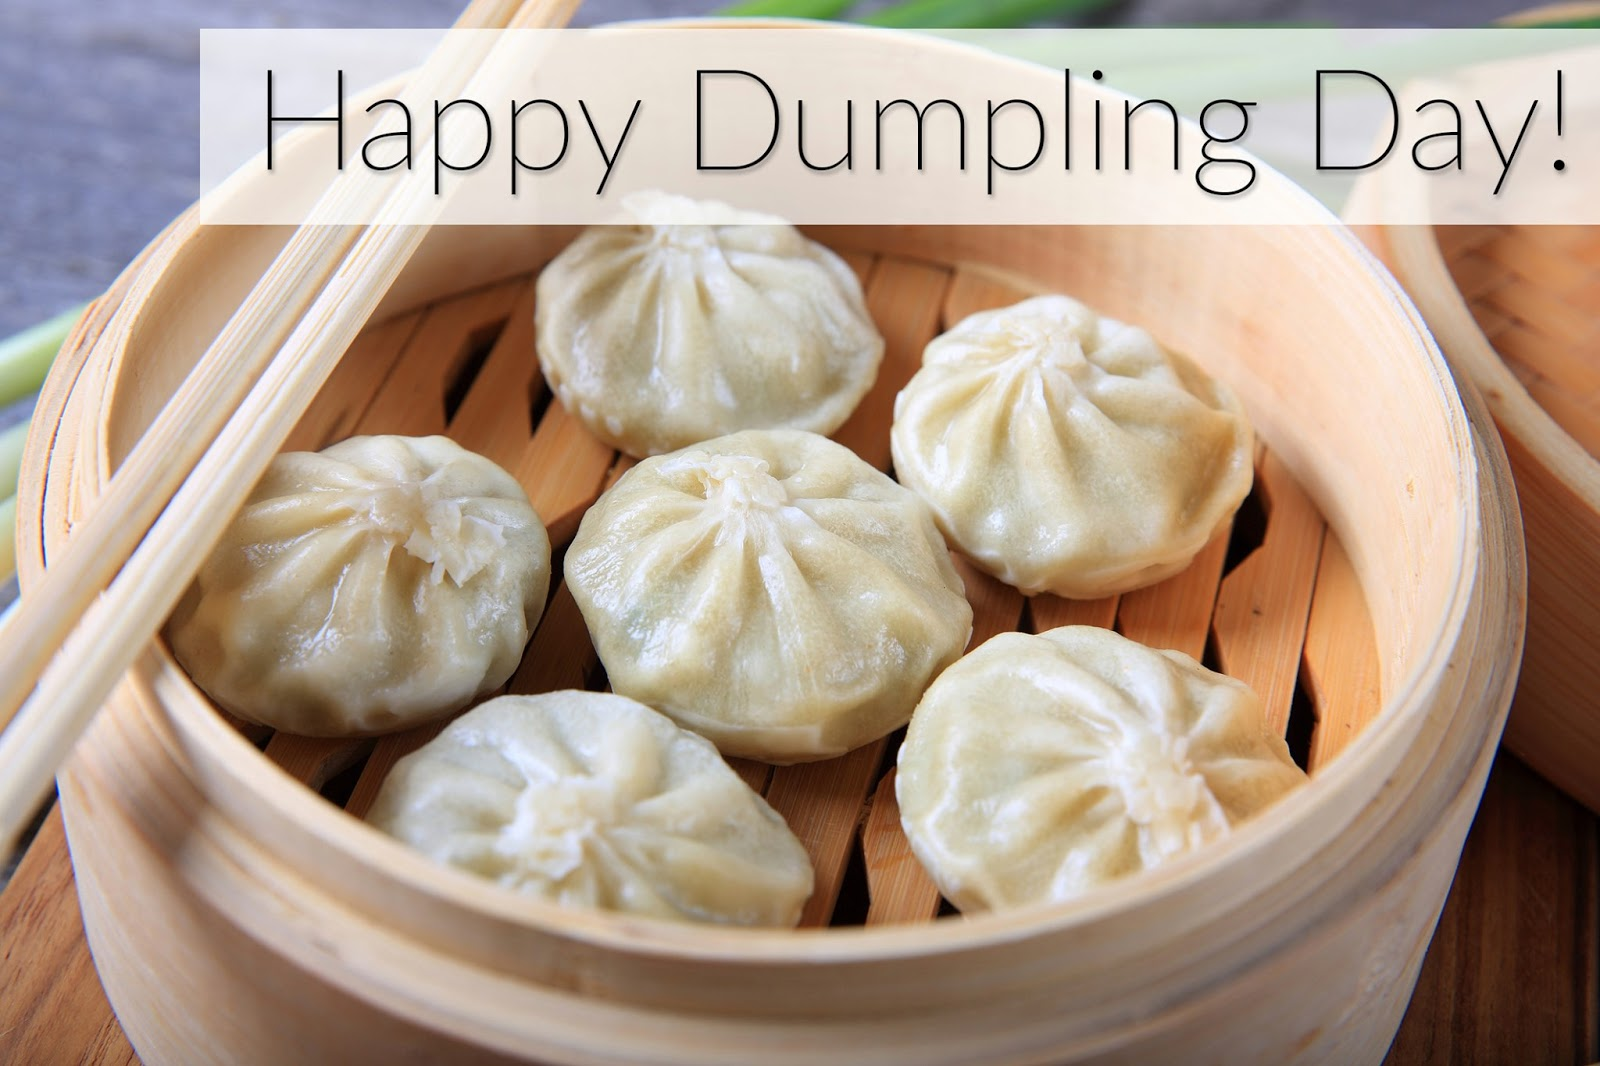 National Dumpling Day Wishes Unique Image